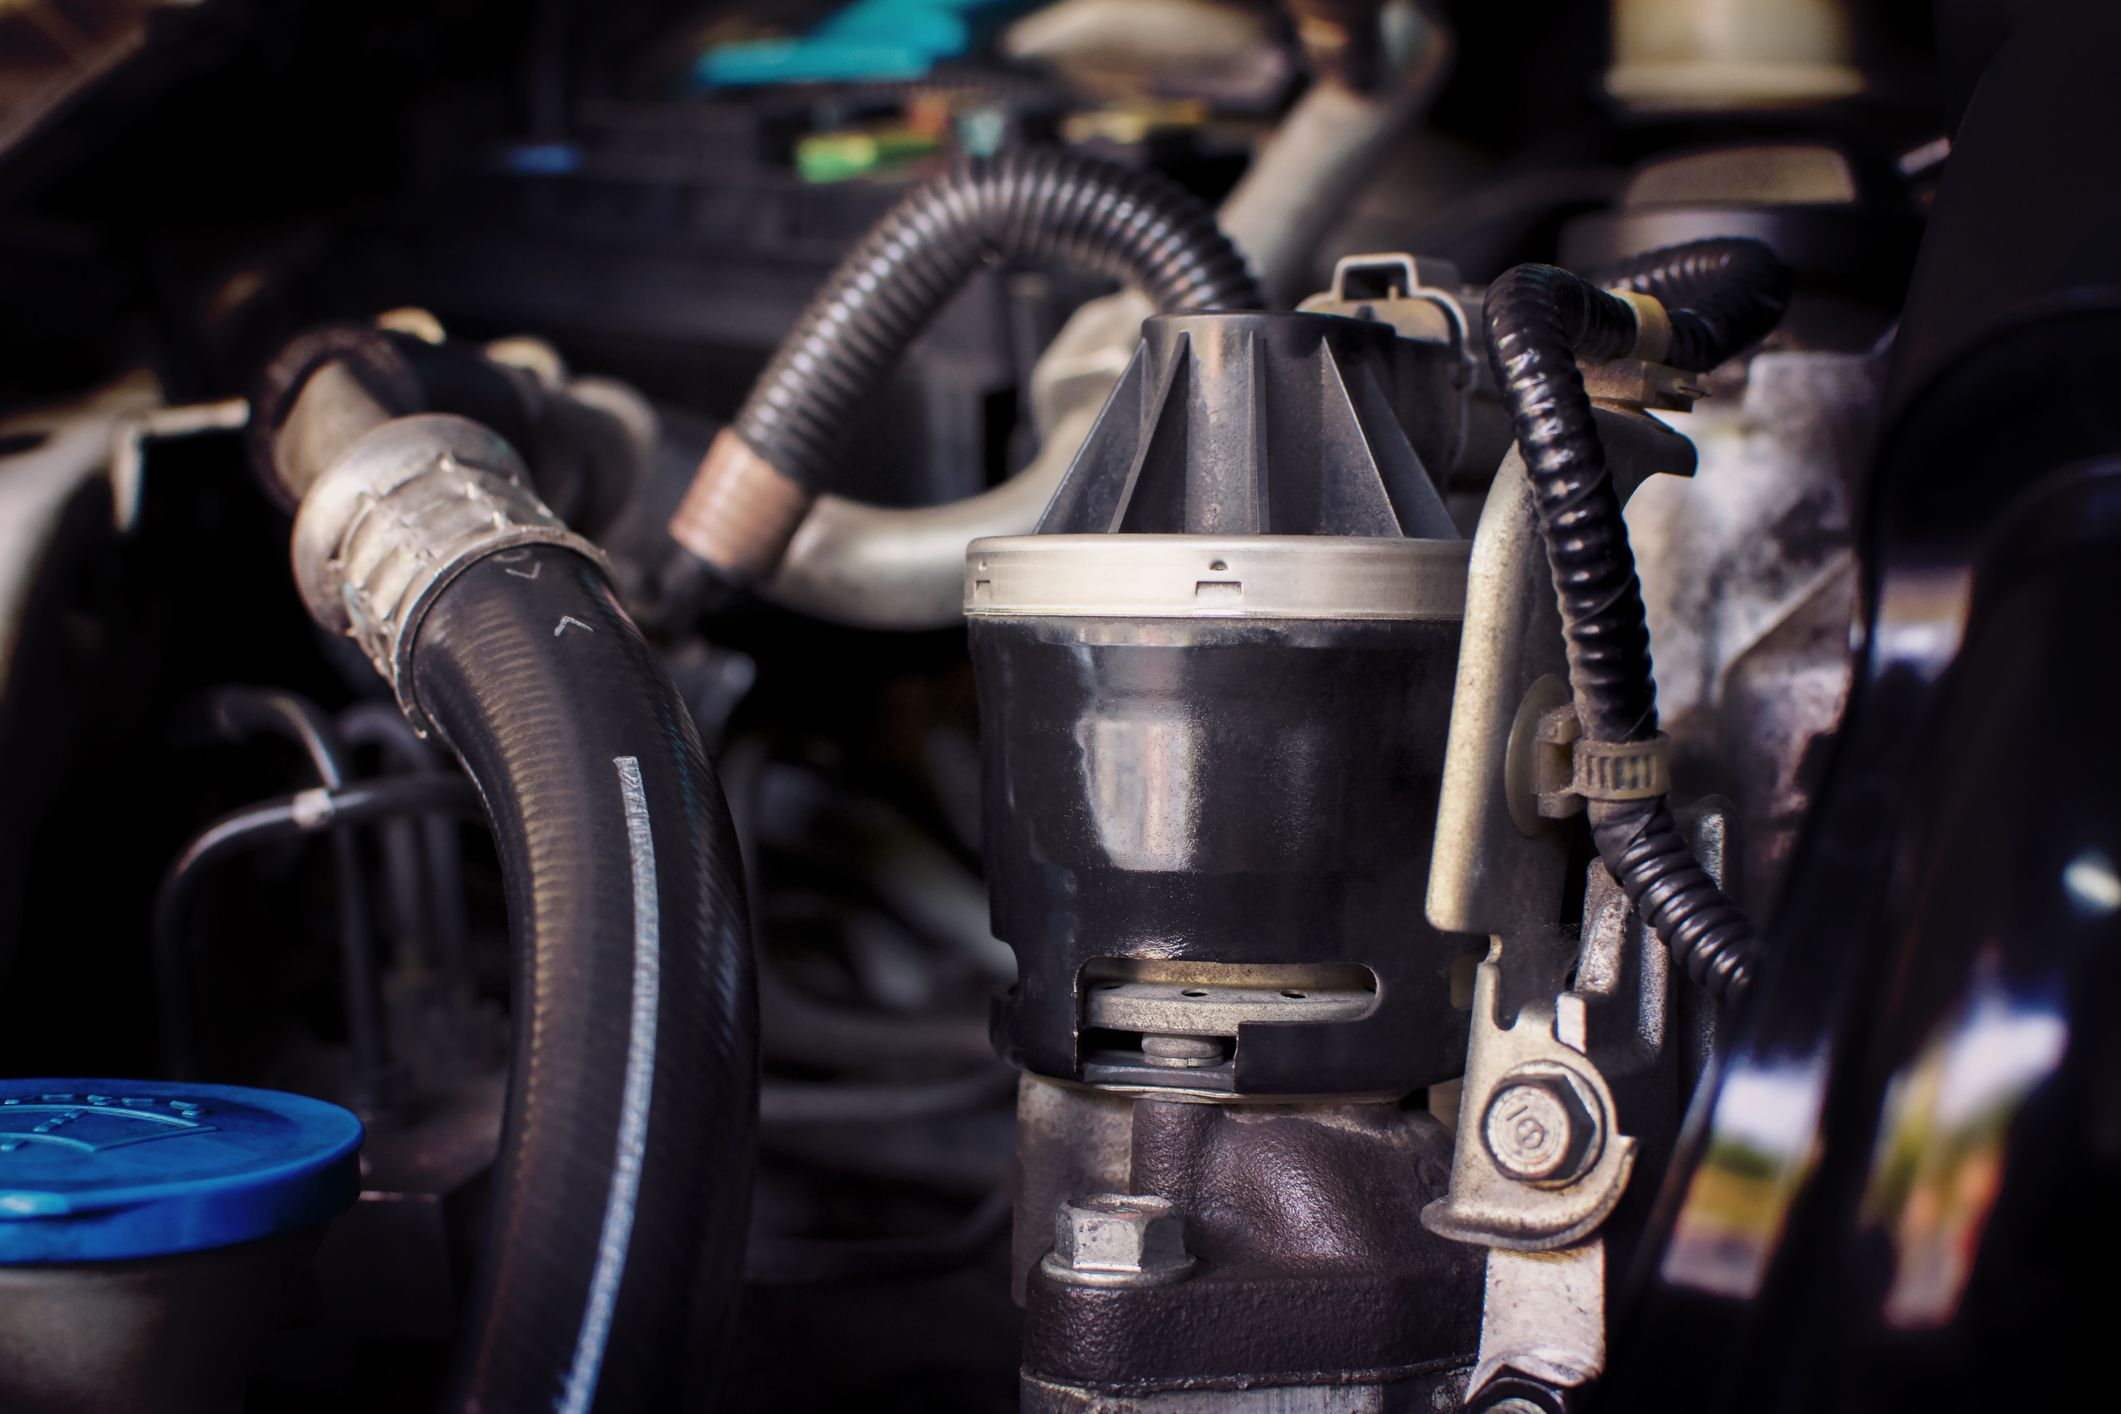 Exhaust Gas Recirculation Valve Troubleshooting Engine Cooling System Diagram On 93 Nissan Truck Fuel Filter